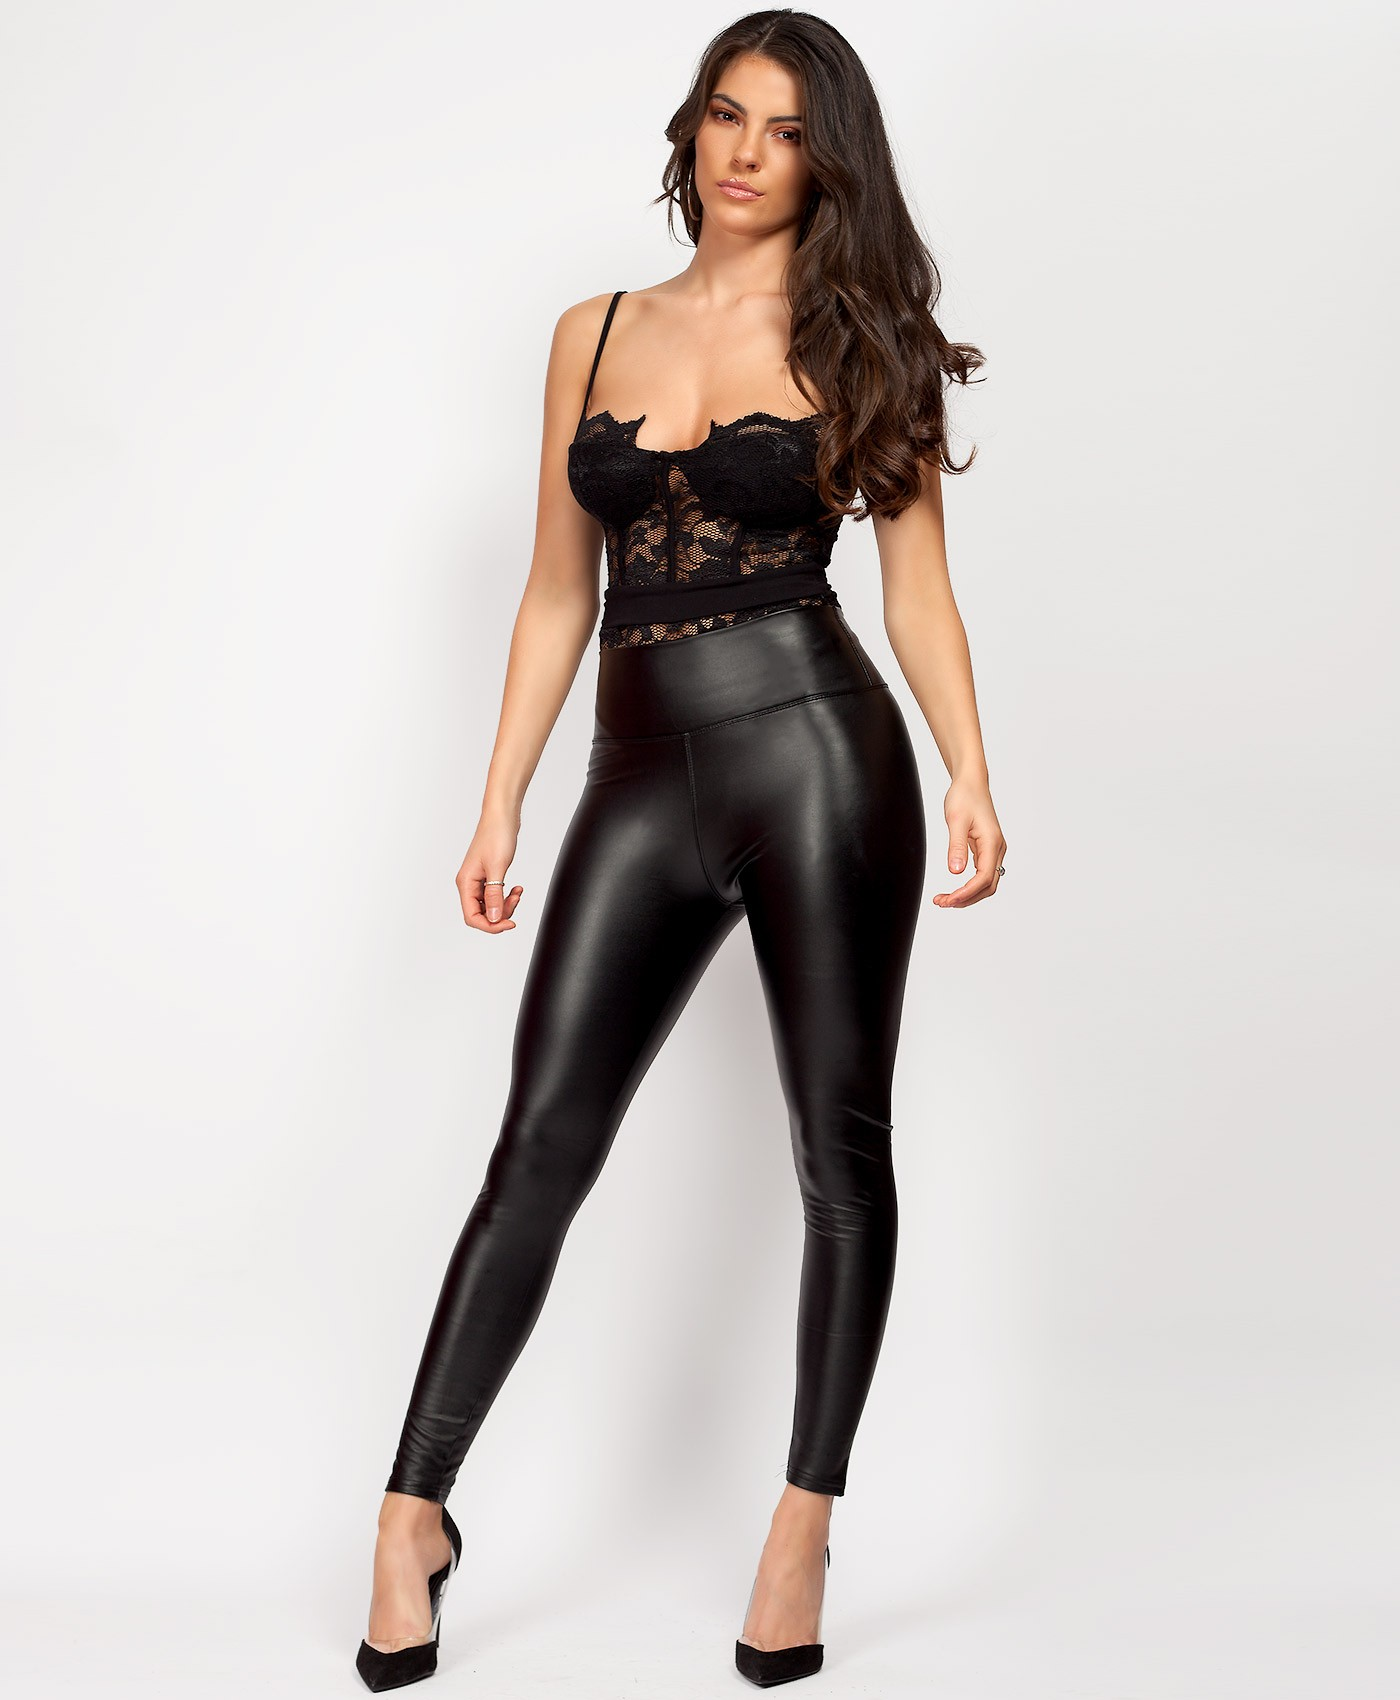 Wet Look Matte Faux Leather PU PVC Leggings